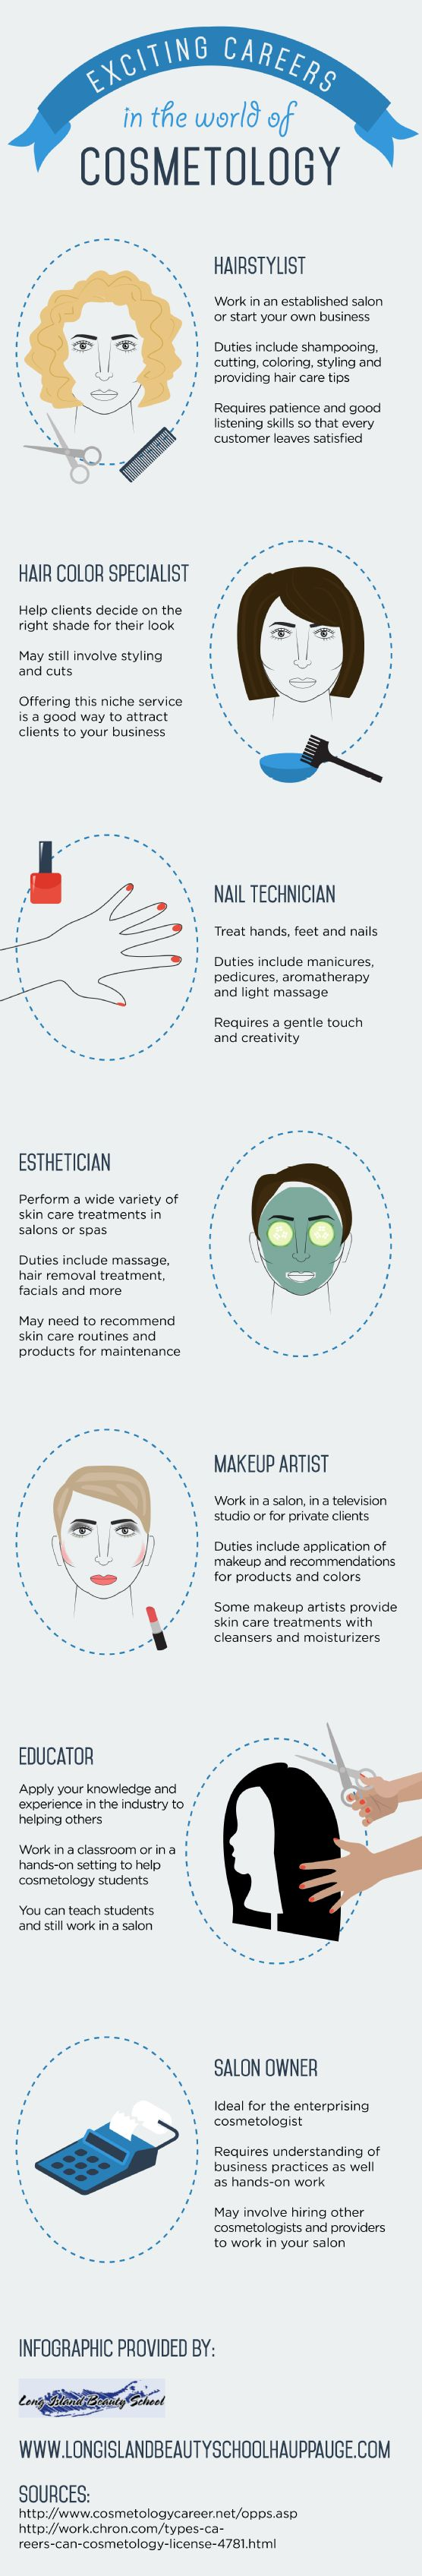 Did you know that makeup artists can work in salons, television studios, or for private clients? Career duties include application of makeup and recommendations for products and colors. Learn more by taking a look at this infographic from a beauty school in Hauppauge.